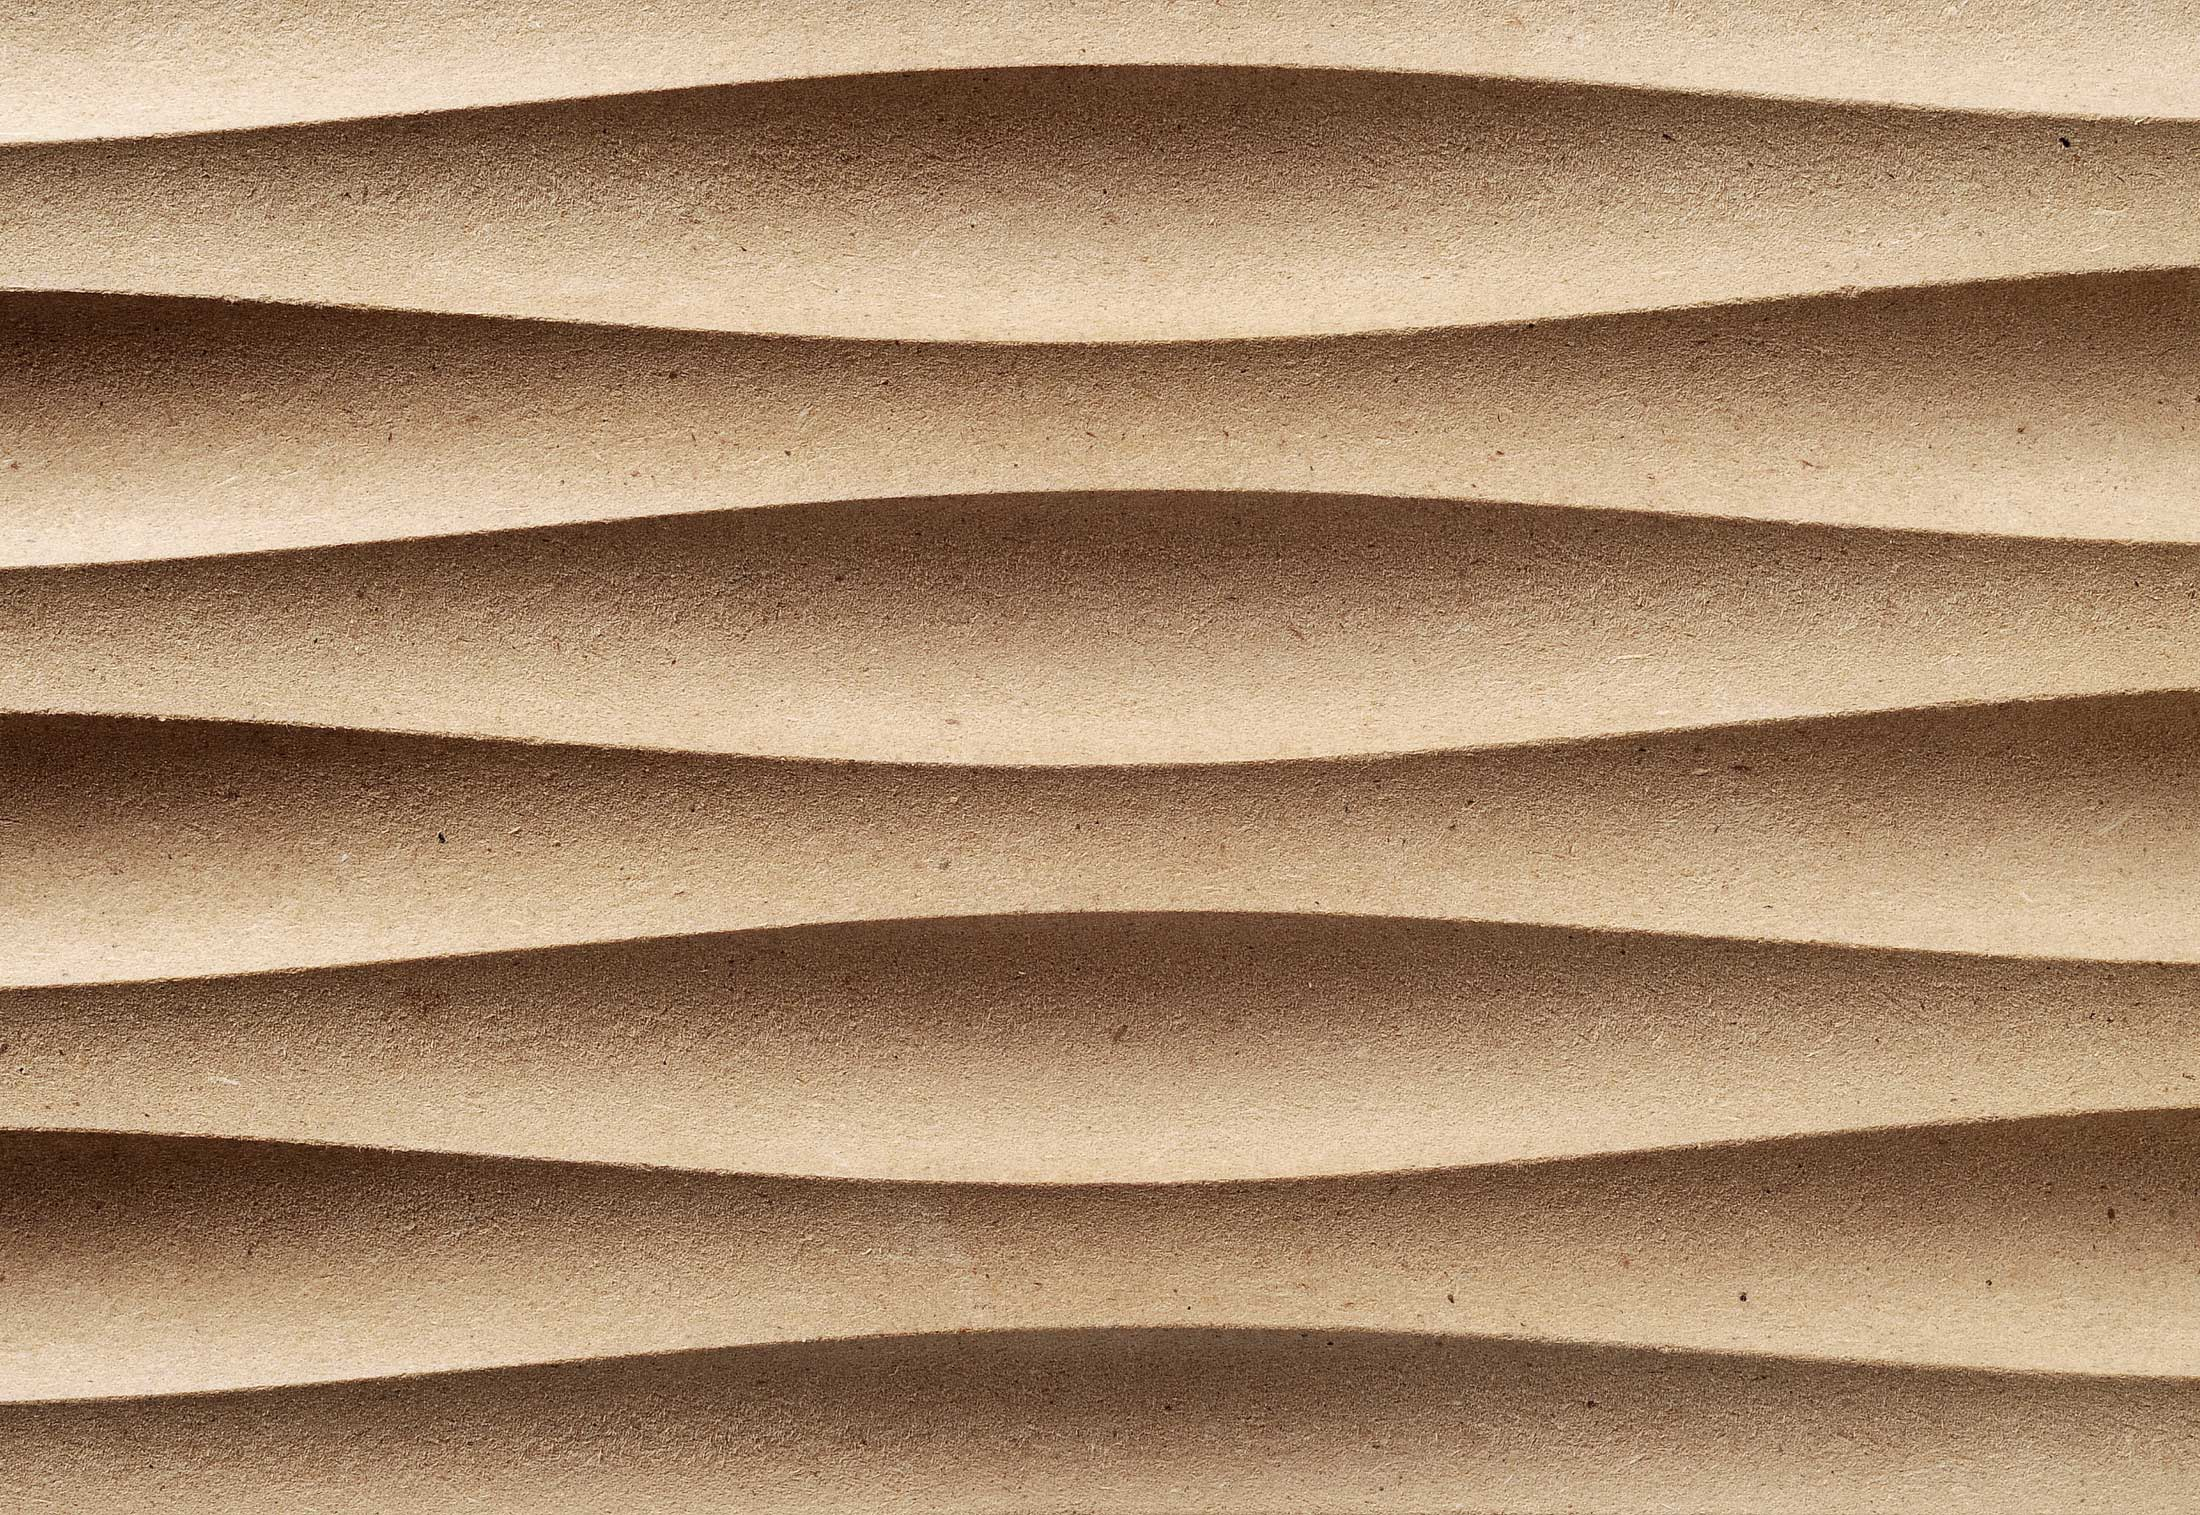 Wave Panel │ Mdf │ Atoll By Georg Ackermann Stylepark